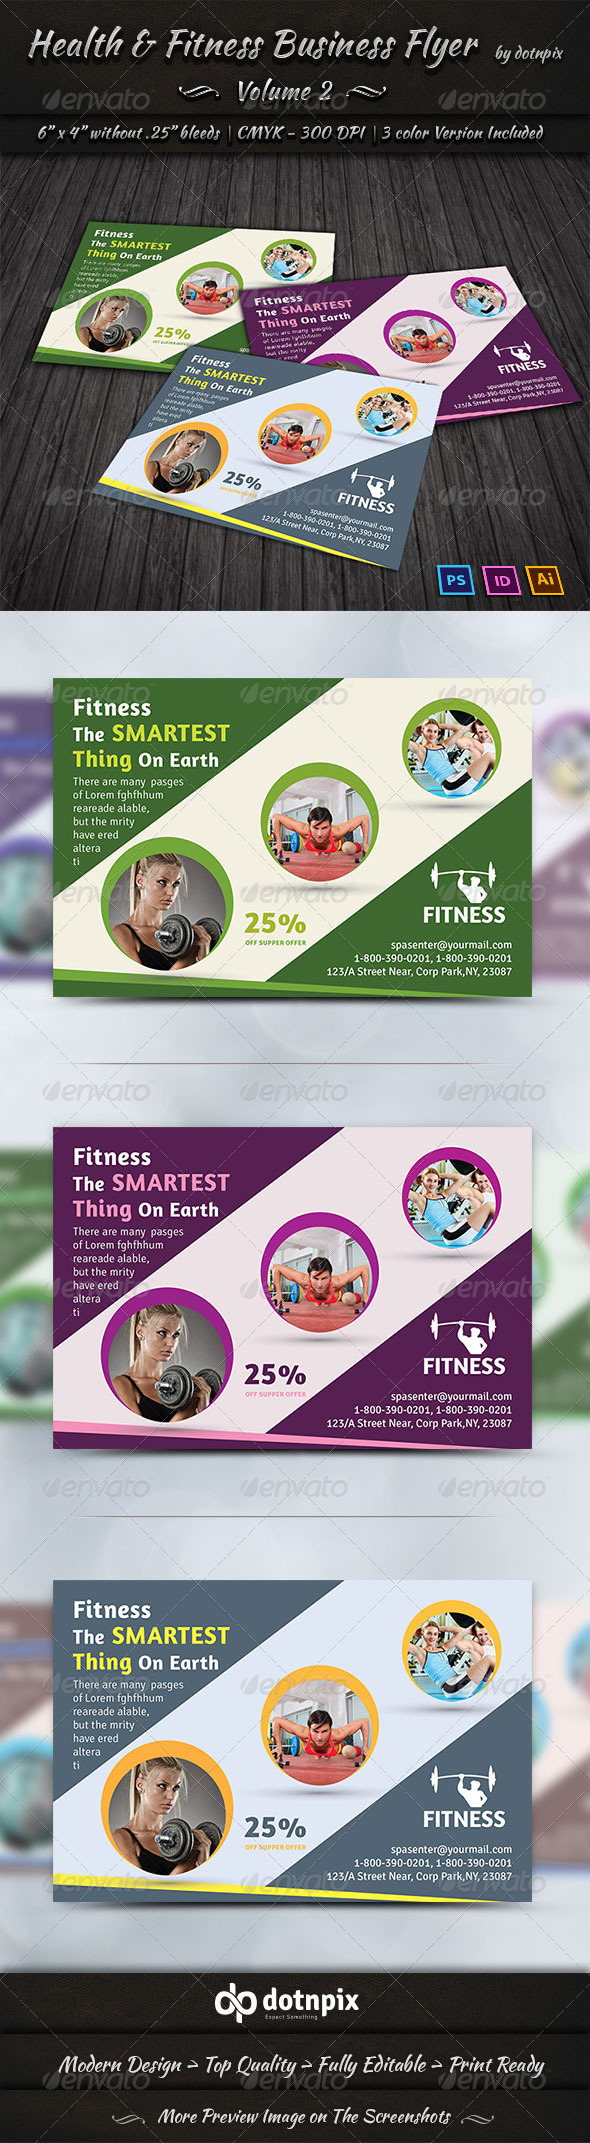 GraphicRiver Health & Fitness Center Flyer Volume 2 7563280